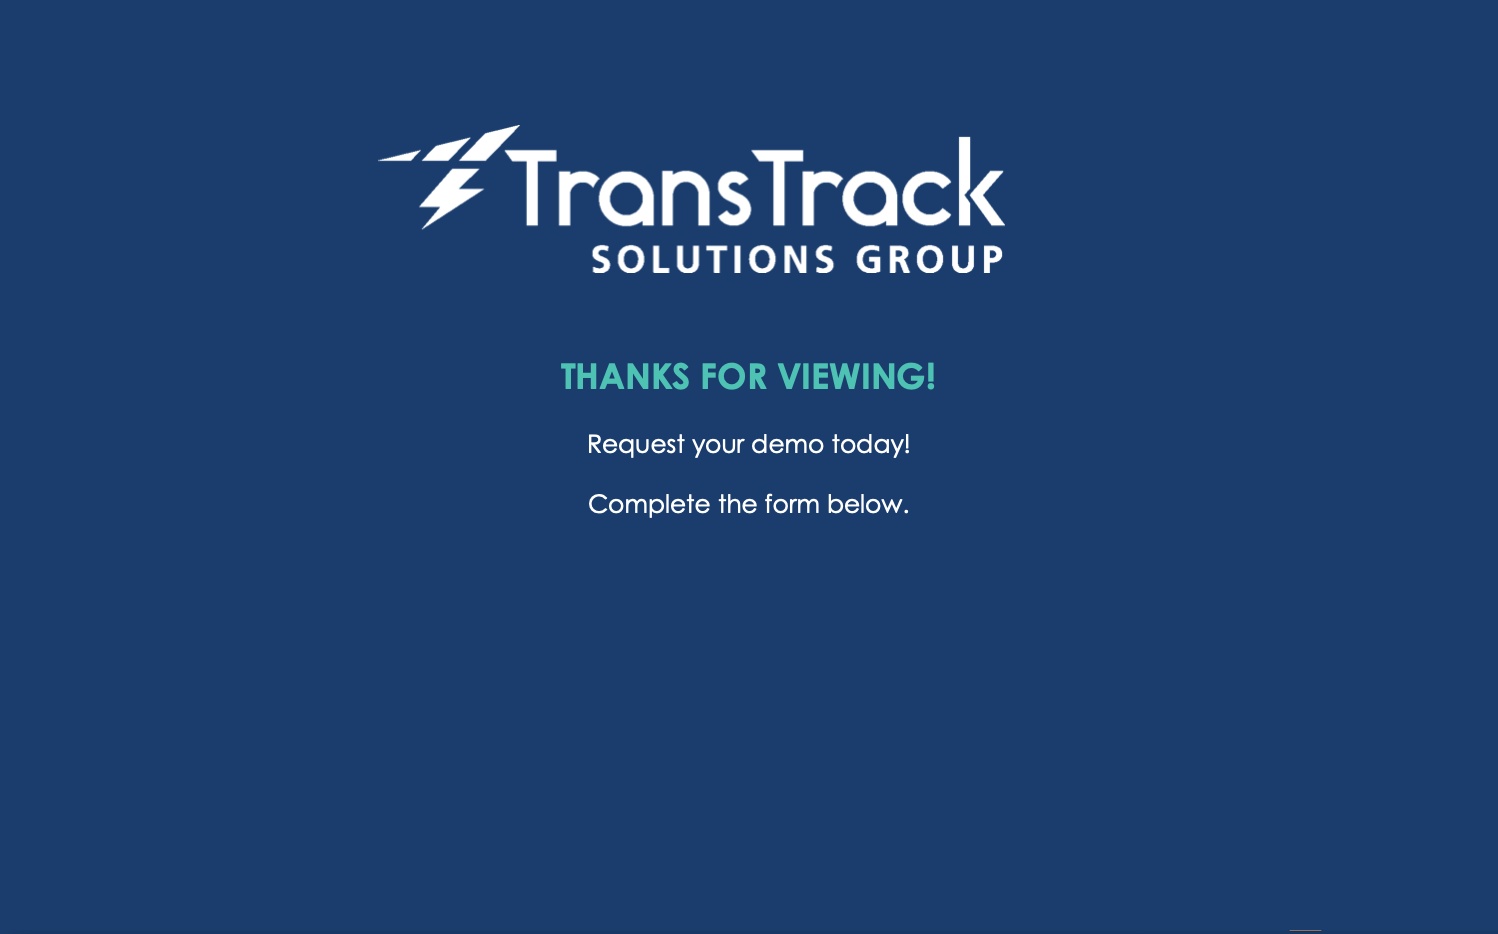 TransTrack Systems